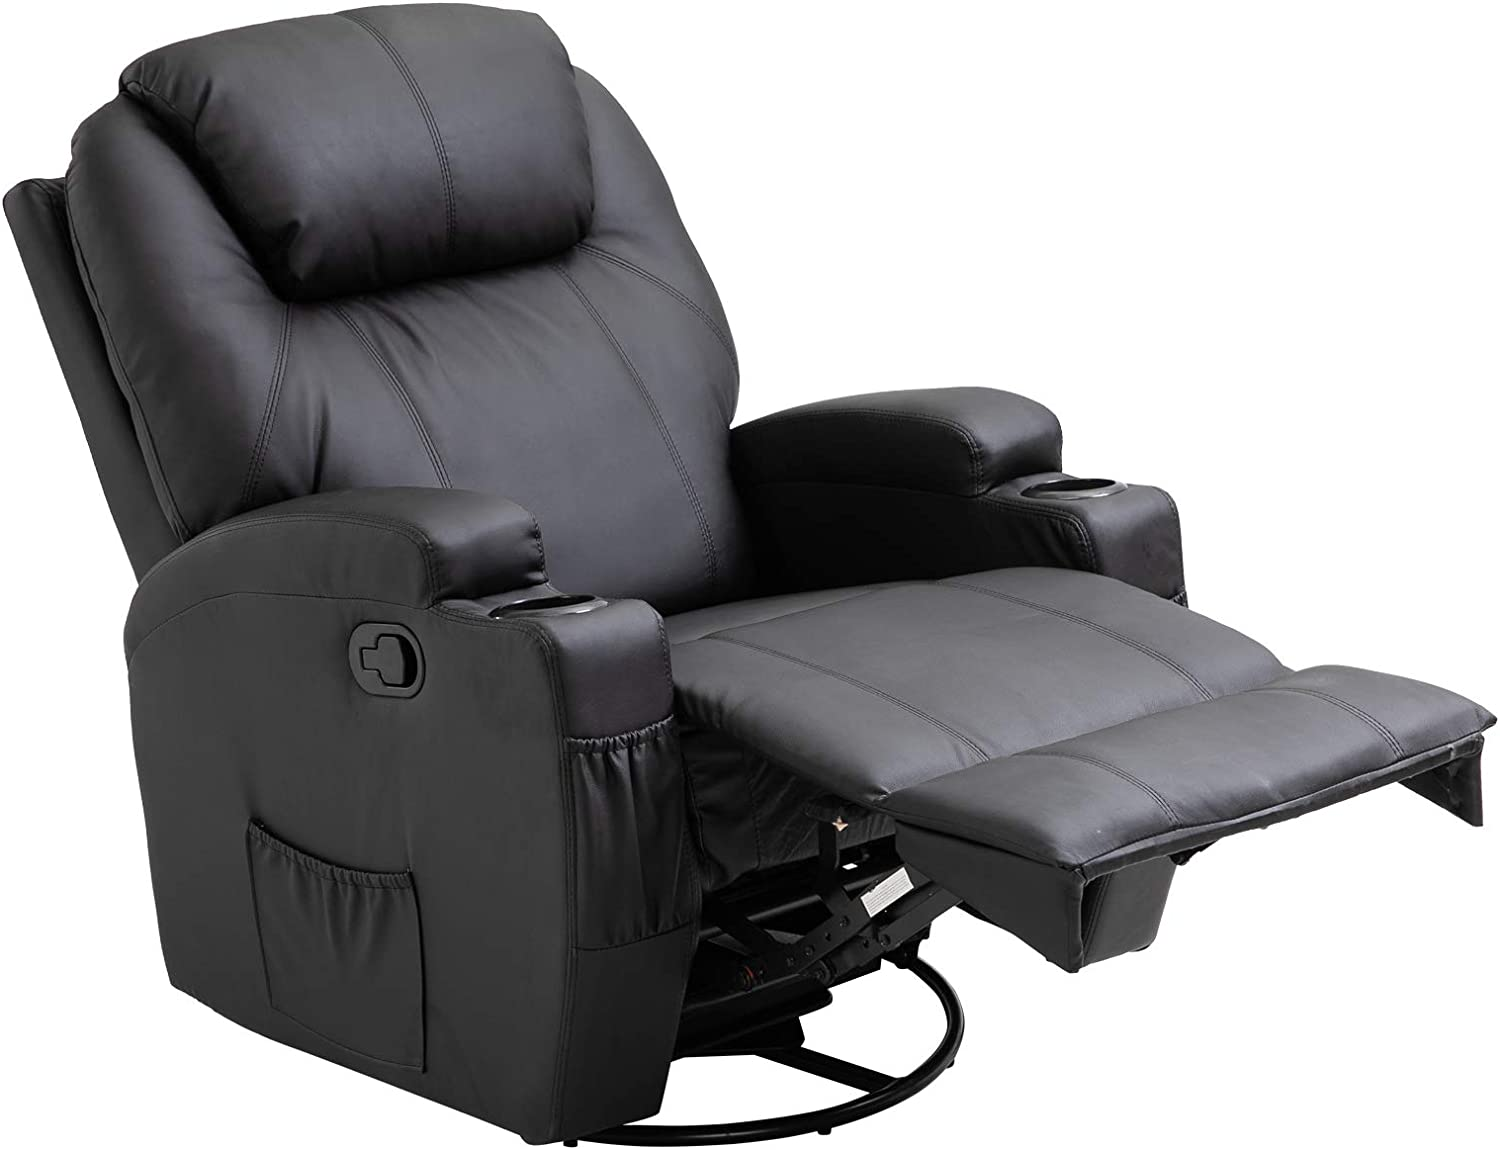 HOMCOM Luxury Electronic Massage Sofa Leather Adjustable Recliner Chair Armchair Lounge (Black)